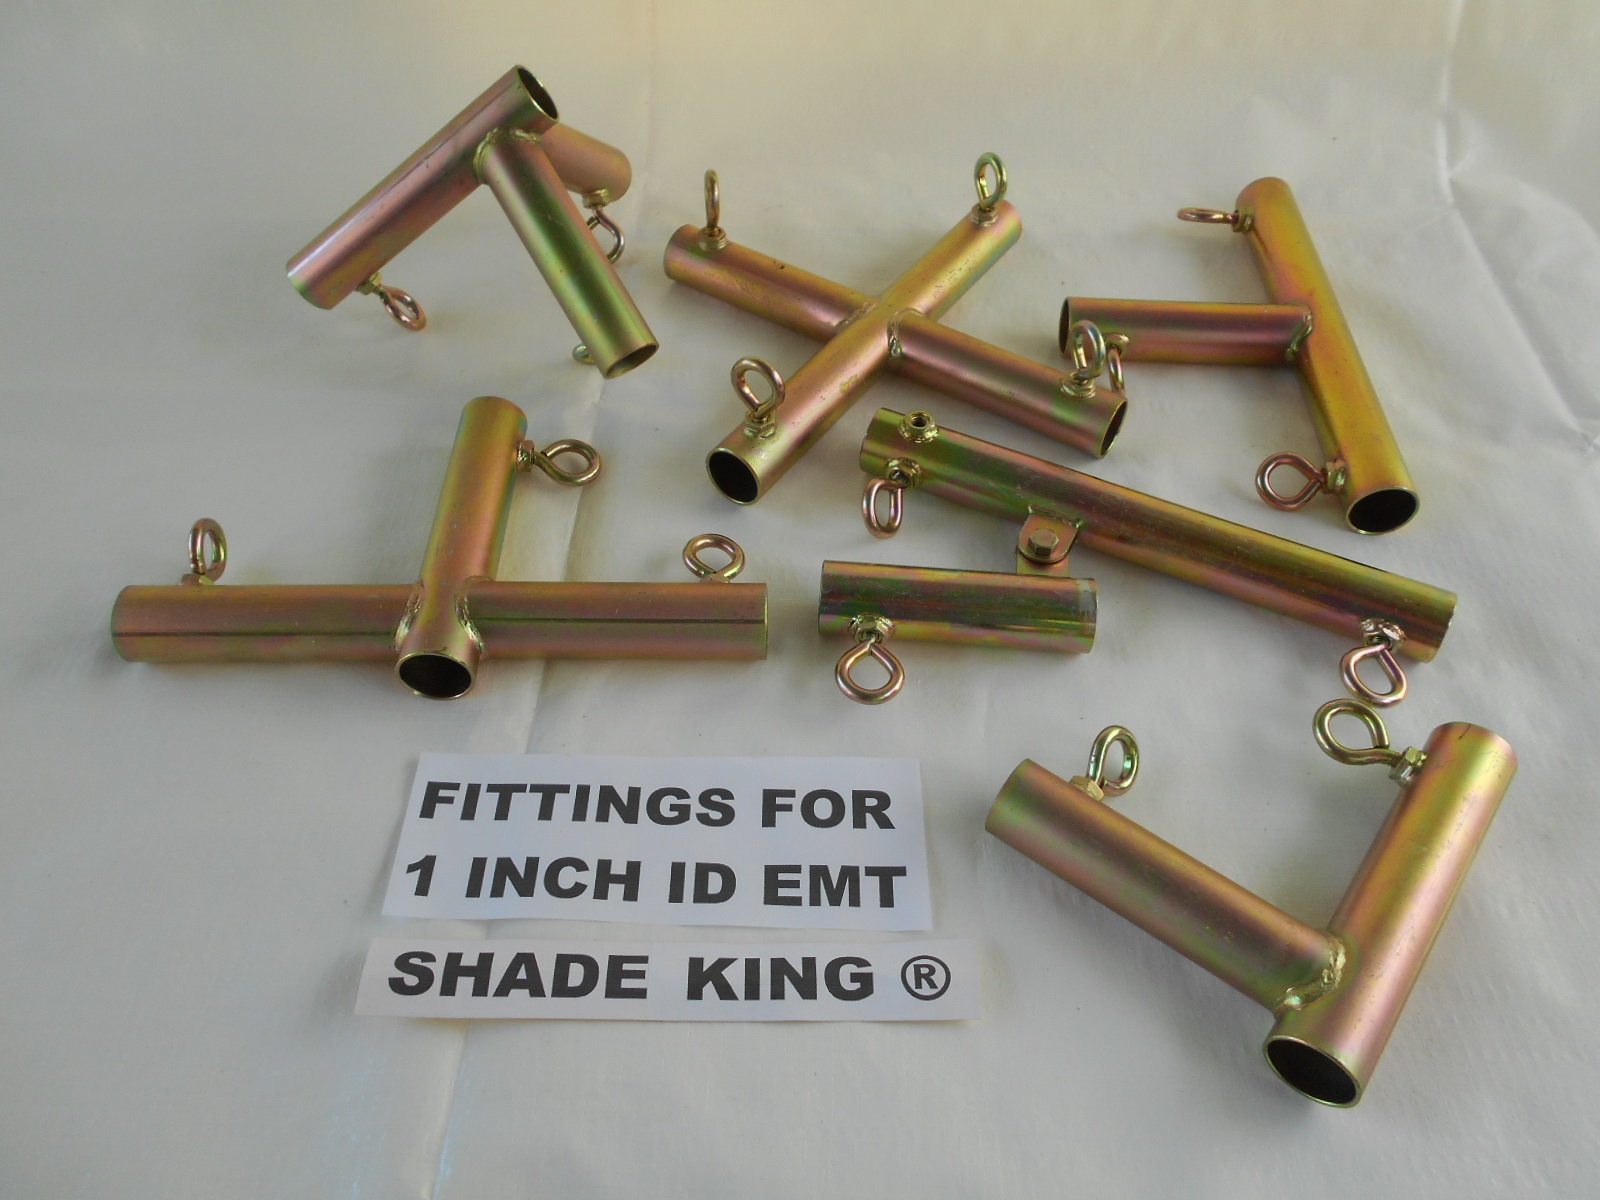 GO HERE FOR 1u00265/8 FITTINGS & PIPE TENT FITTINGSu003cBRu003eSHADE KING ®tm CANOPY FITTINGS